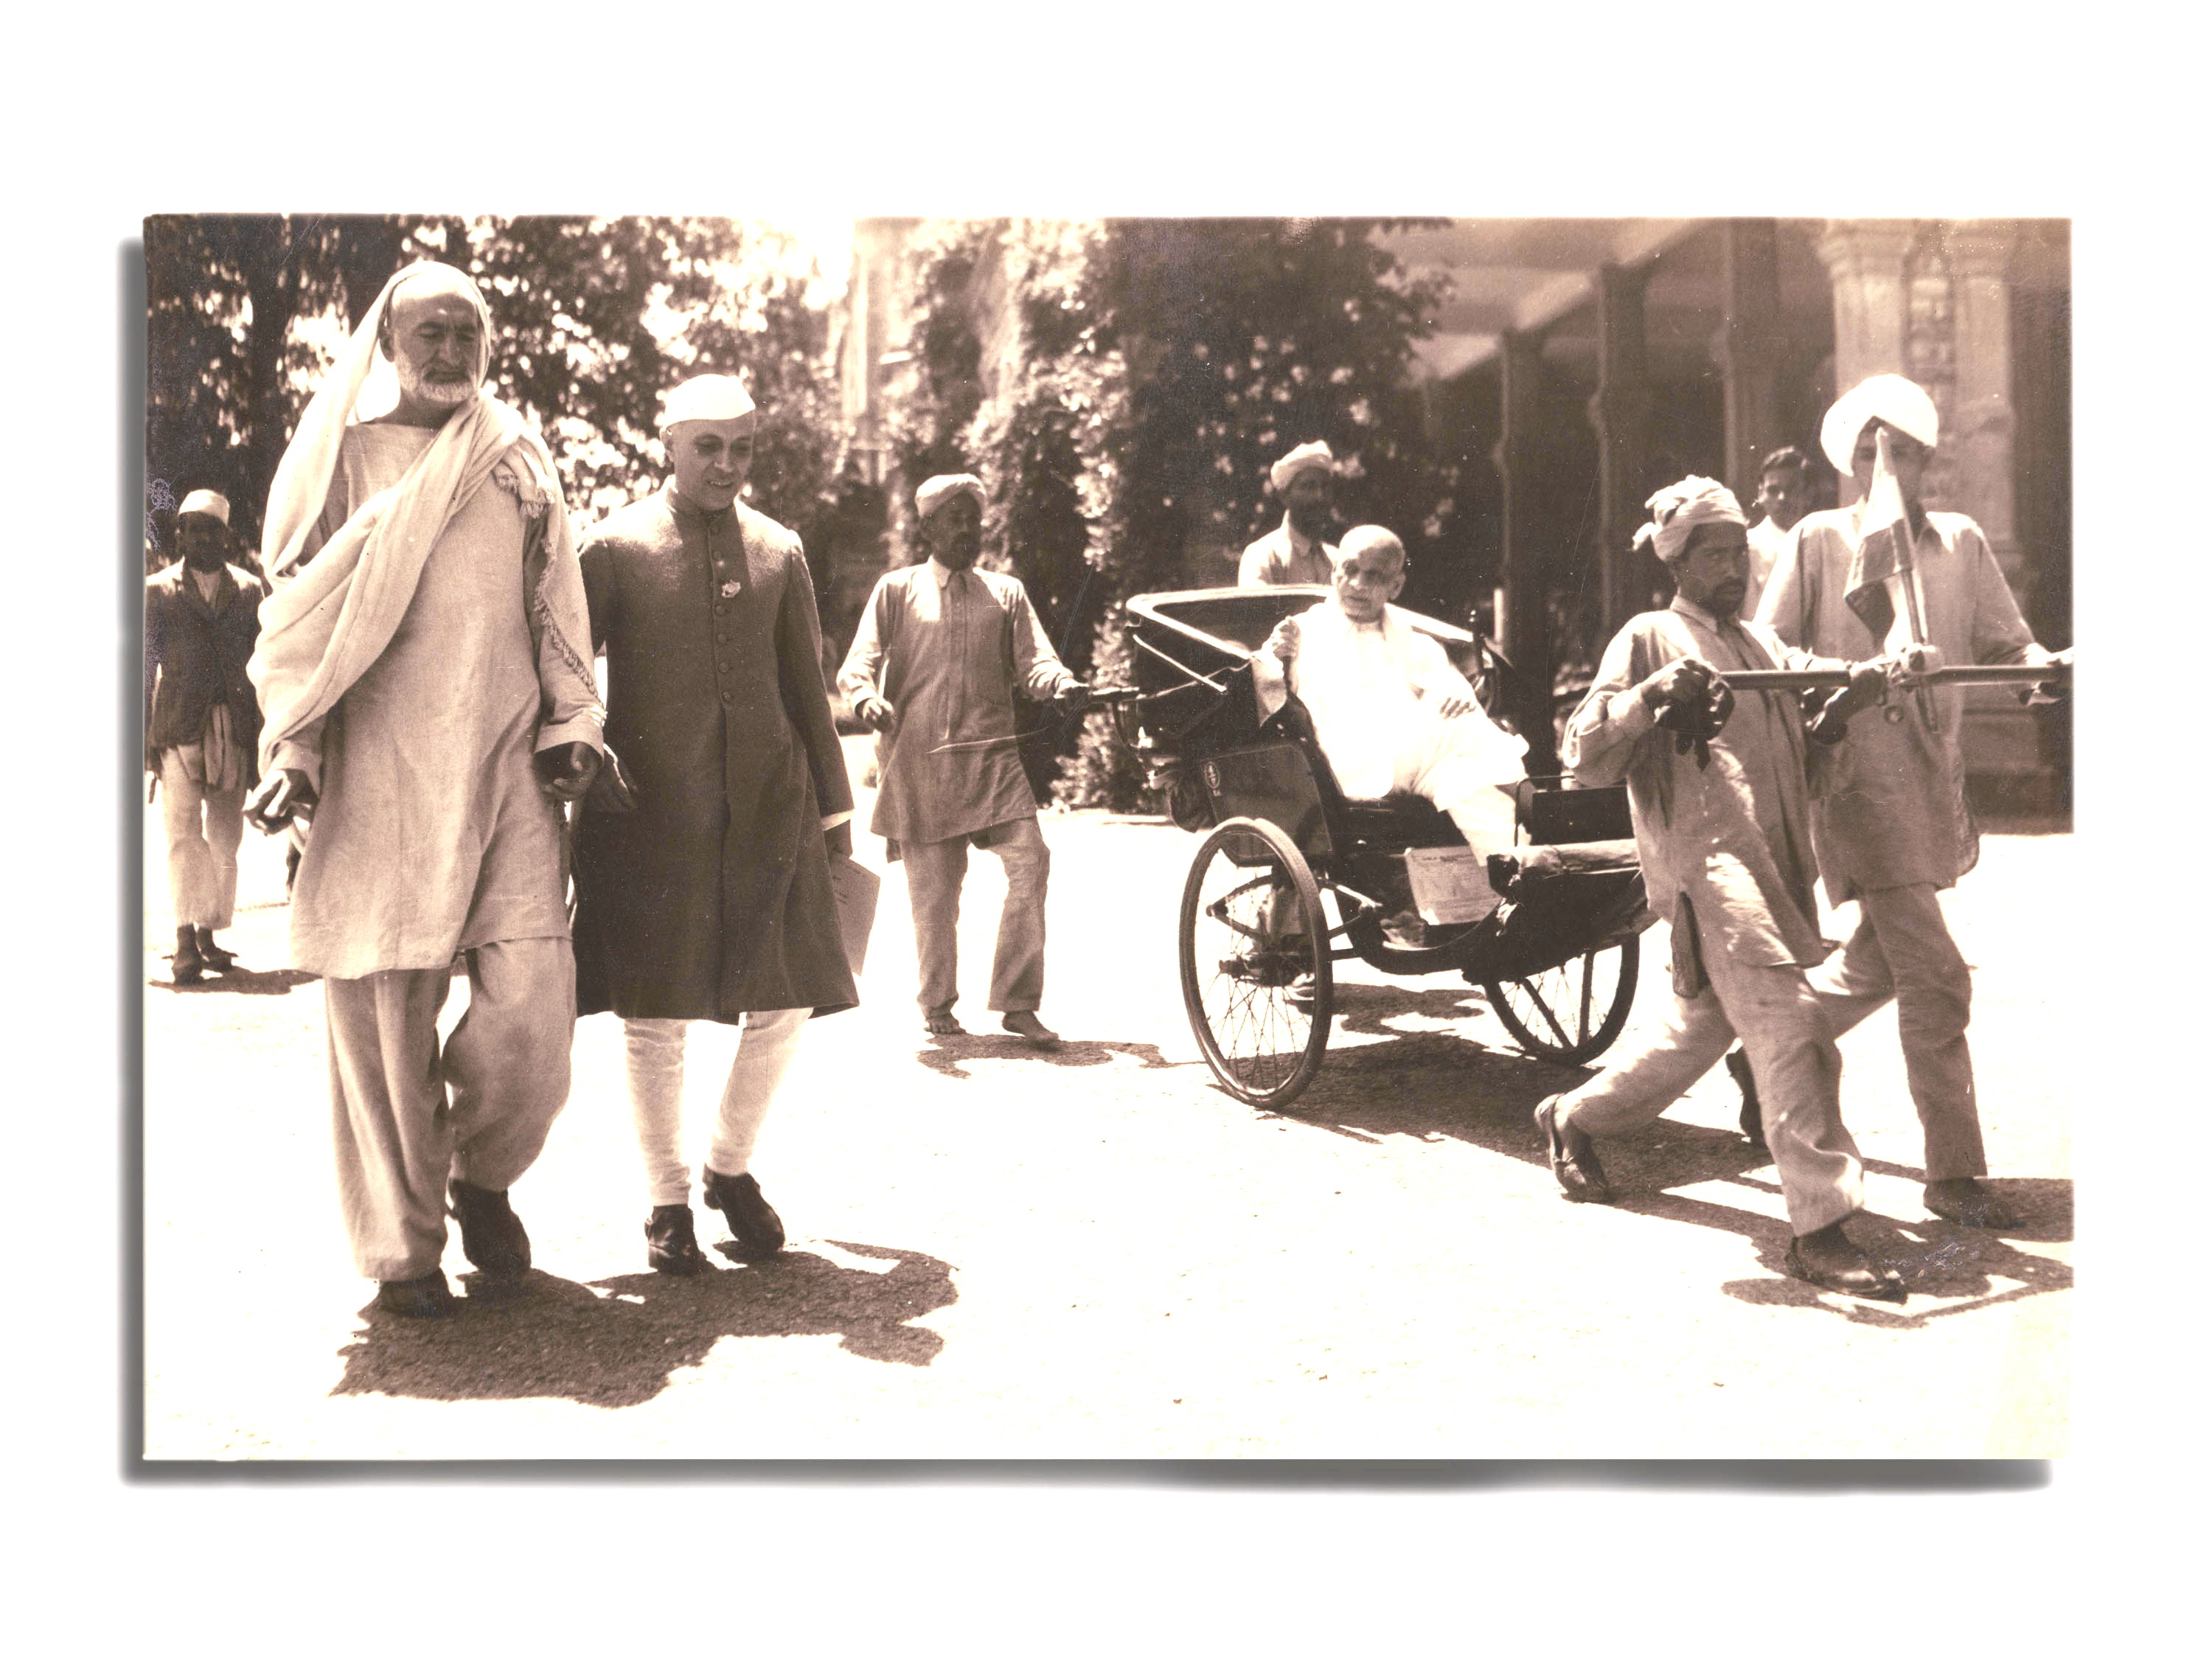 In Simla for the 1946 independence conference - Abdul Ghafar Khan, Nehru, and Sardar Patel (in the rickshaw)